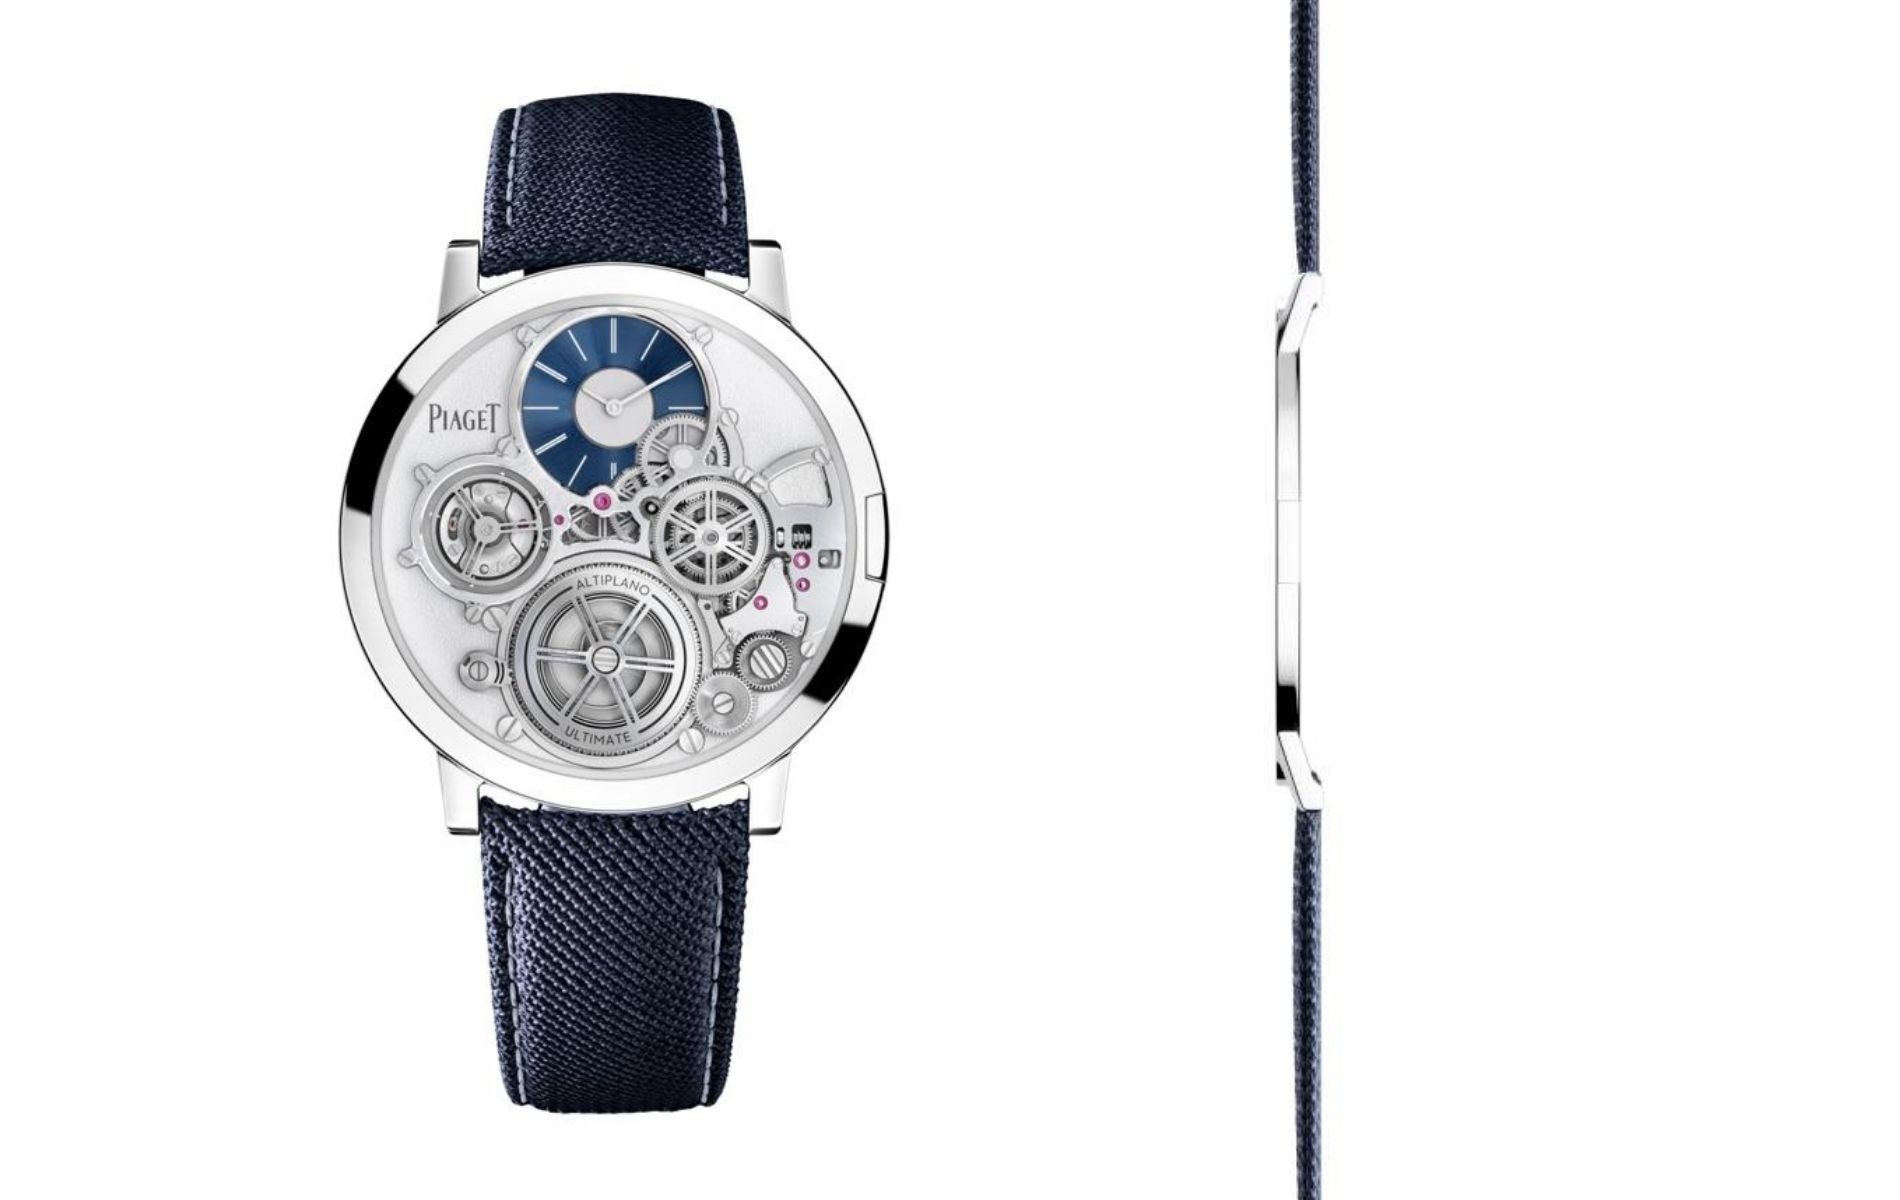 Piaget Altiplano Ultimate Concept Wins The Best Watch Of 2020 At GPHG